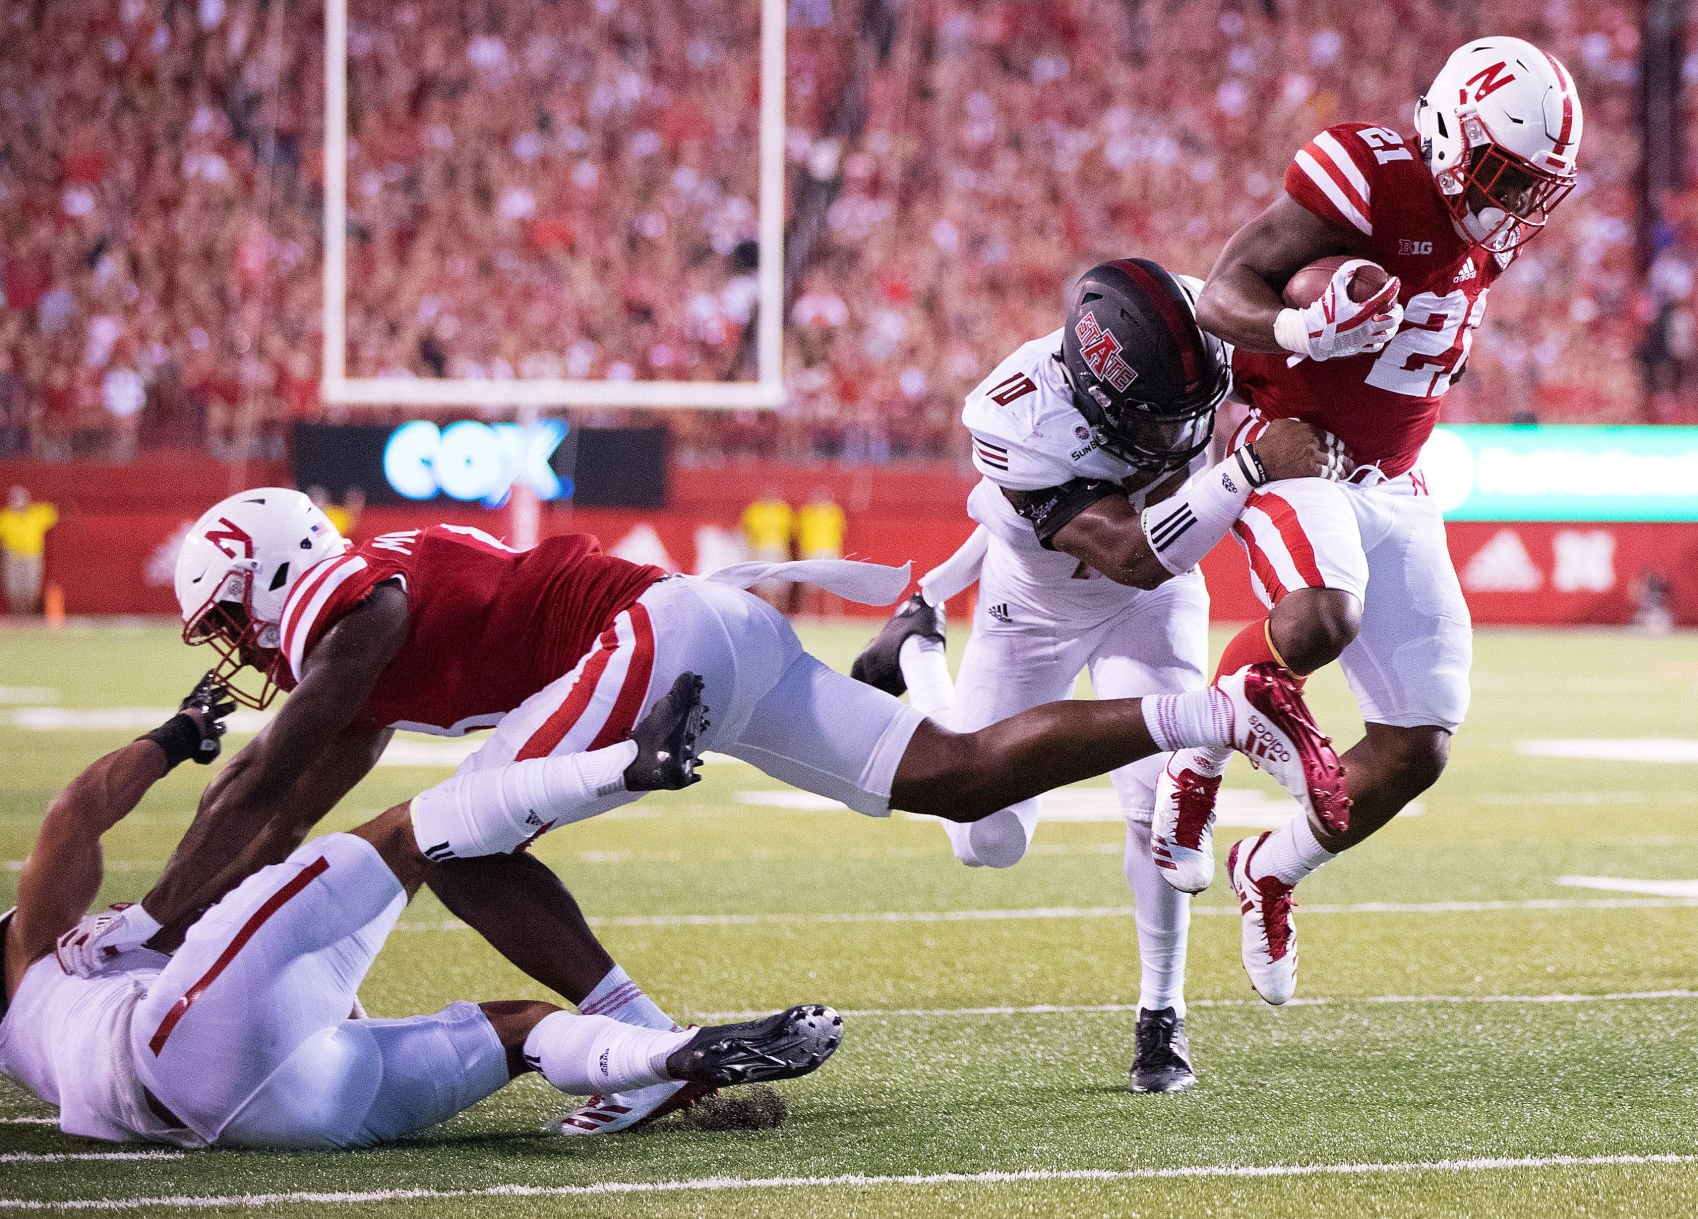 Nebraska AD on loss: 'I'm angry, I'm frustrated, I'm disappointed'